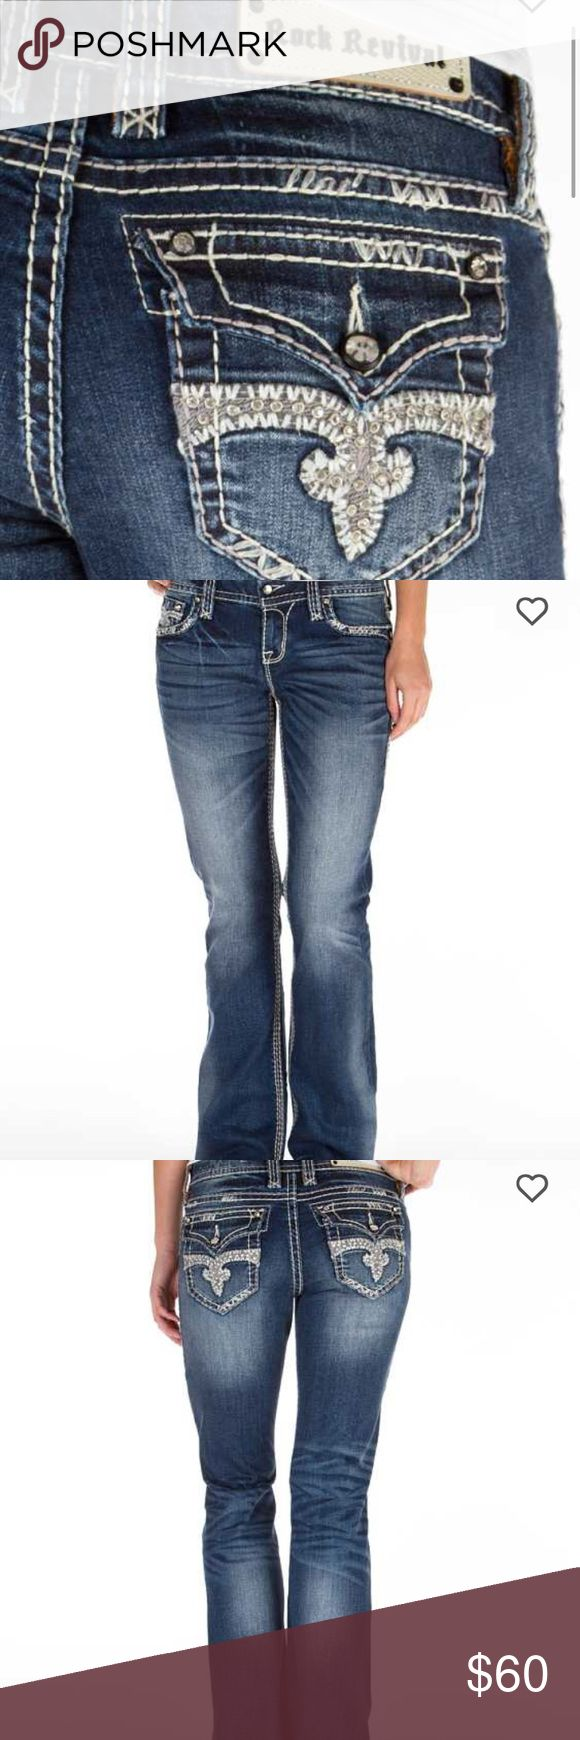 Jillian Bootcut Rock Revival Jeans In like new condition! No flaws. Make a reasonable offer 💕 Rock Revival Jeans Boot Cut